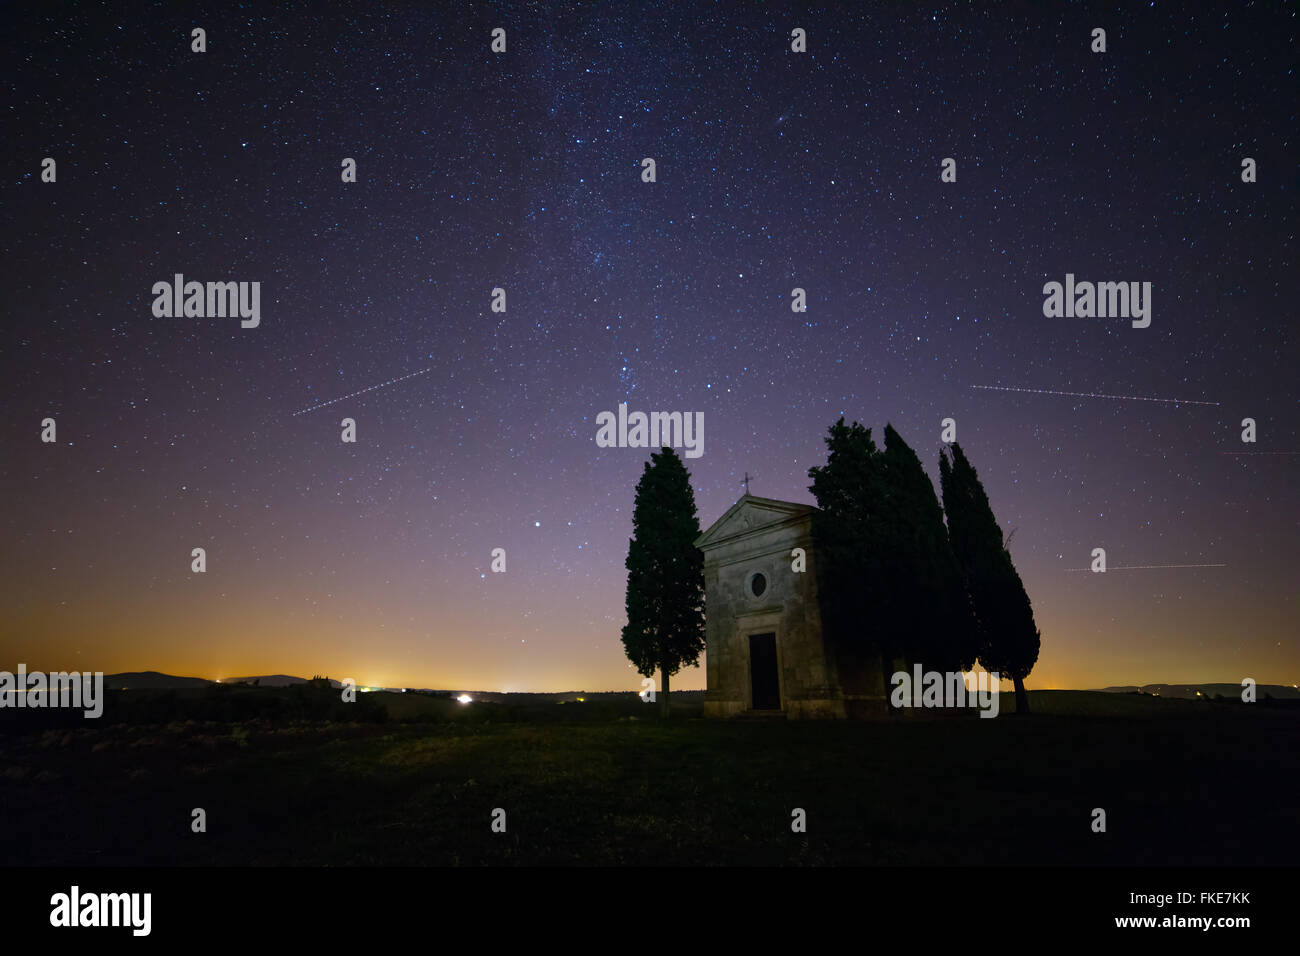 Italy. Tuscany. Lonely chapel and cypress trees in a field. Night sky with myriads of stars - Stock Image